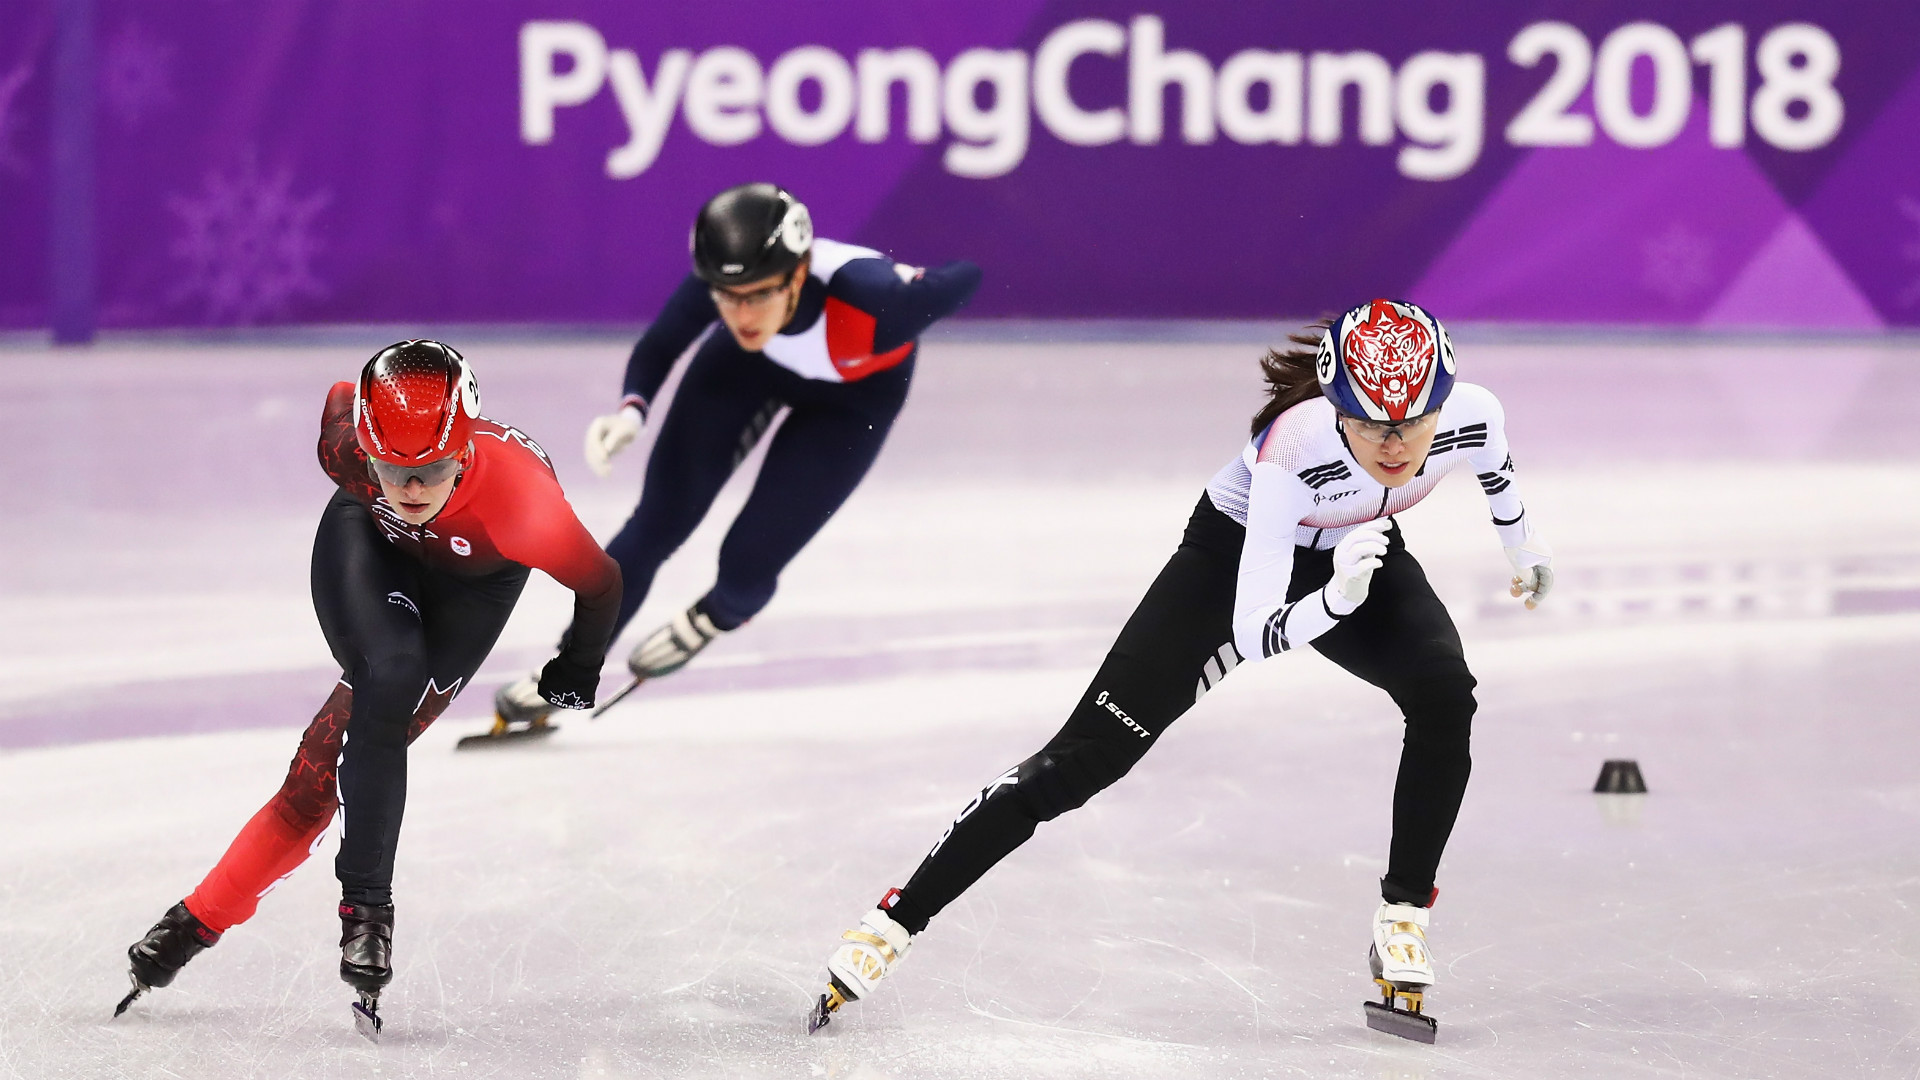 Winter Olympics results: Short track speed skating women's 1500m